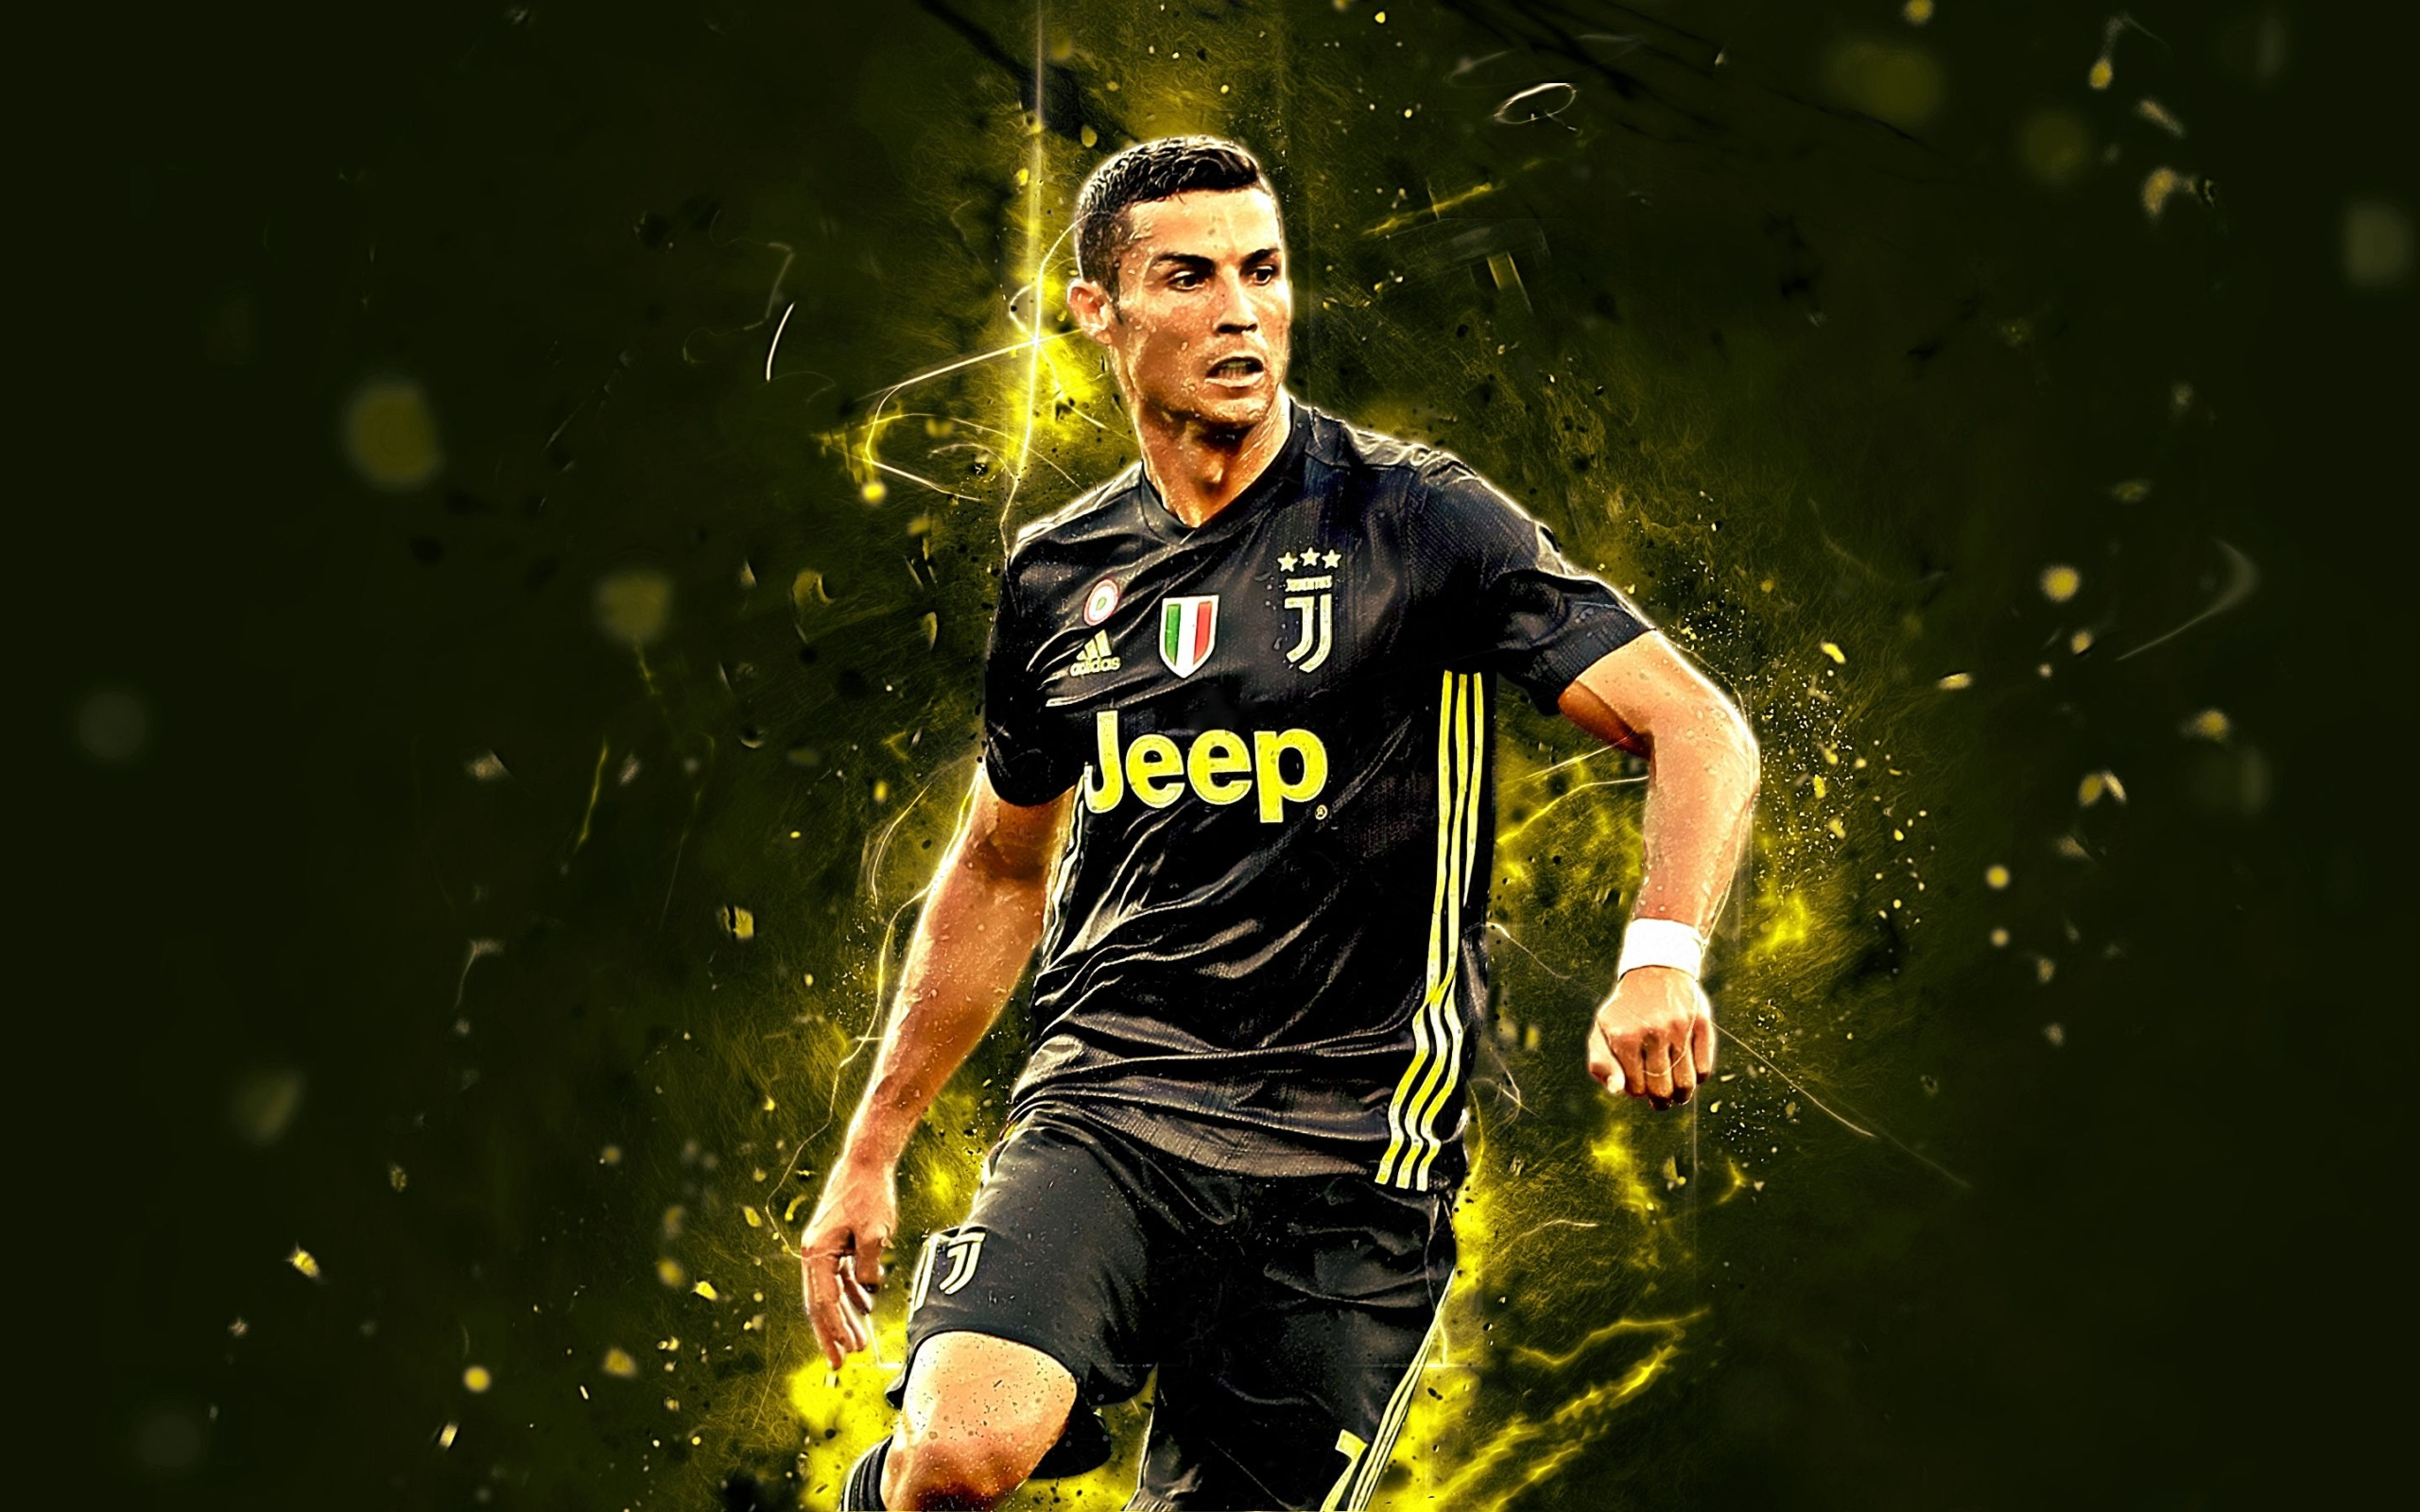 Ronaldo Wallpapers – Get the Right Photo For Your PC